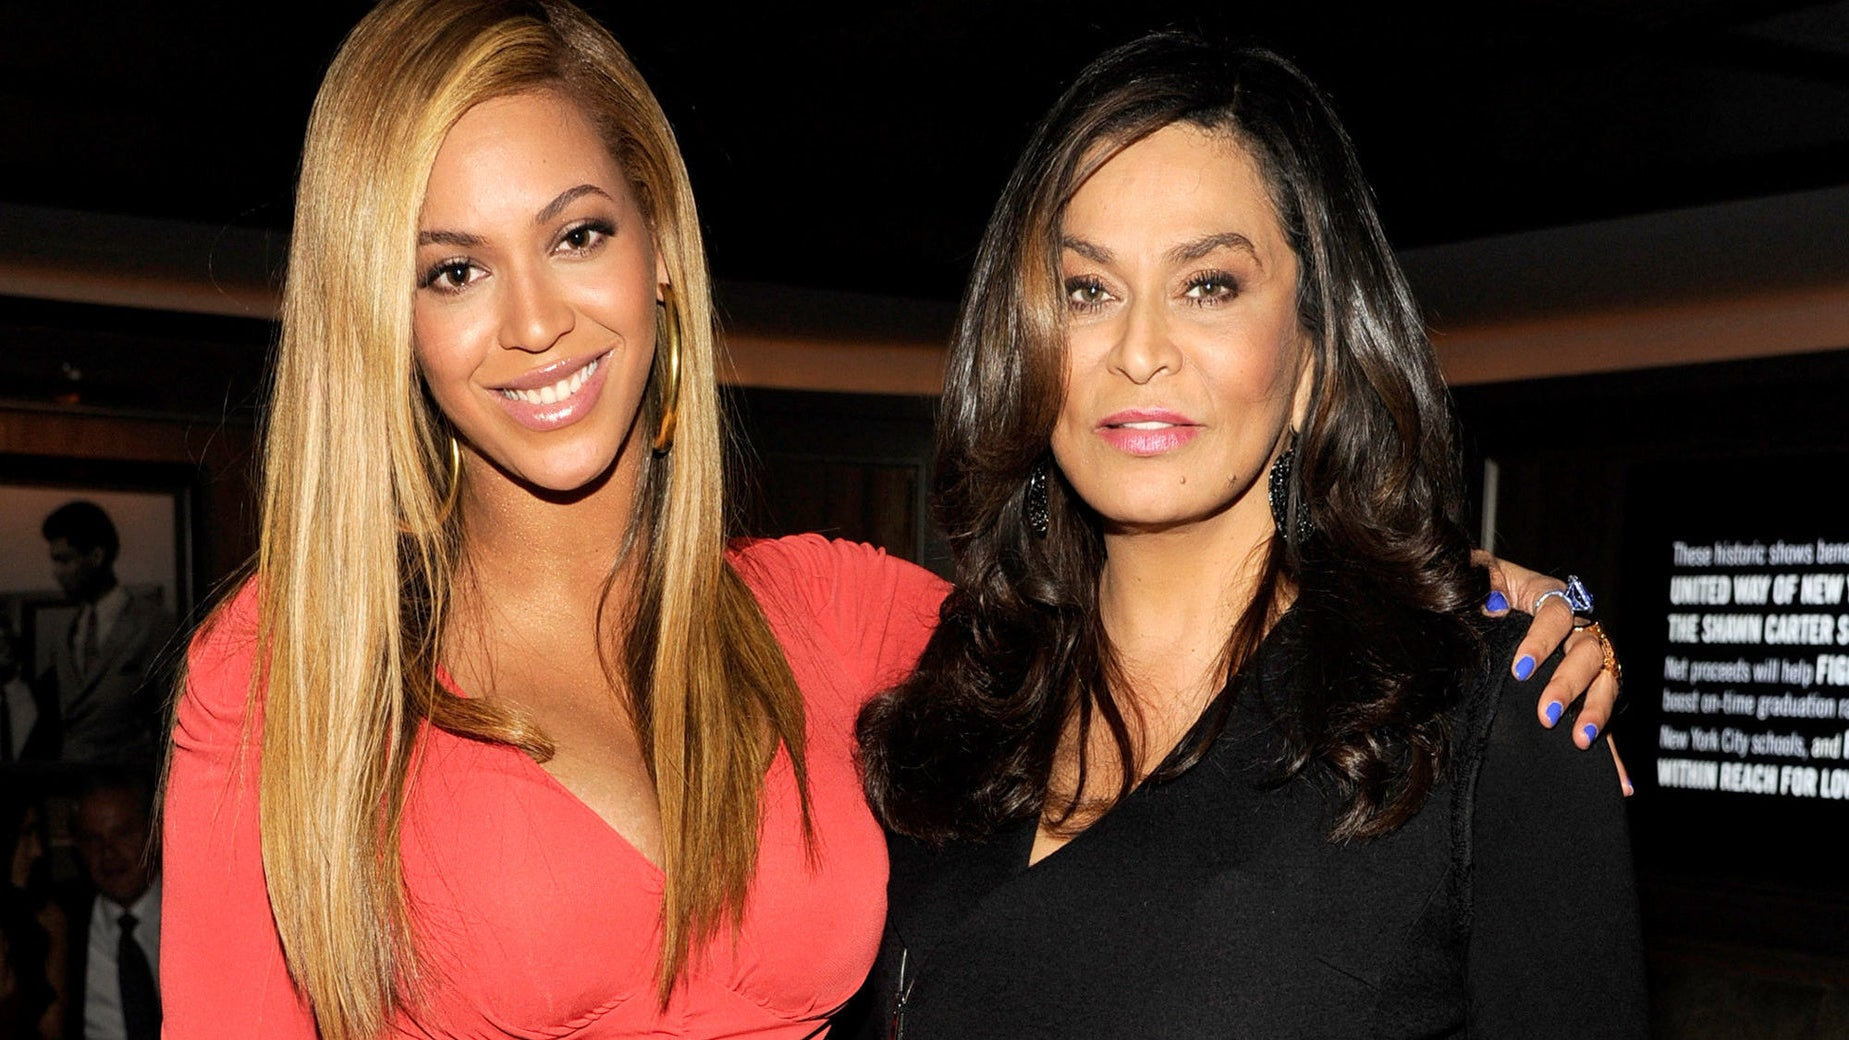 Tina Knowles-Lawson Shares Touching Message To Beyoncé On Singer's 37th Birthday